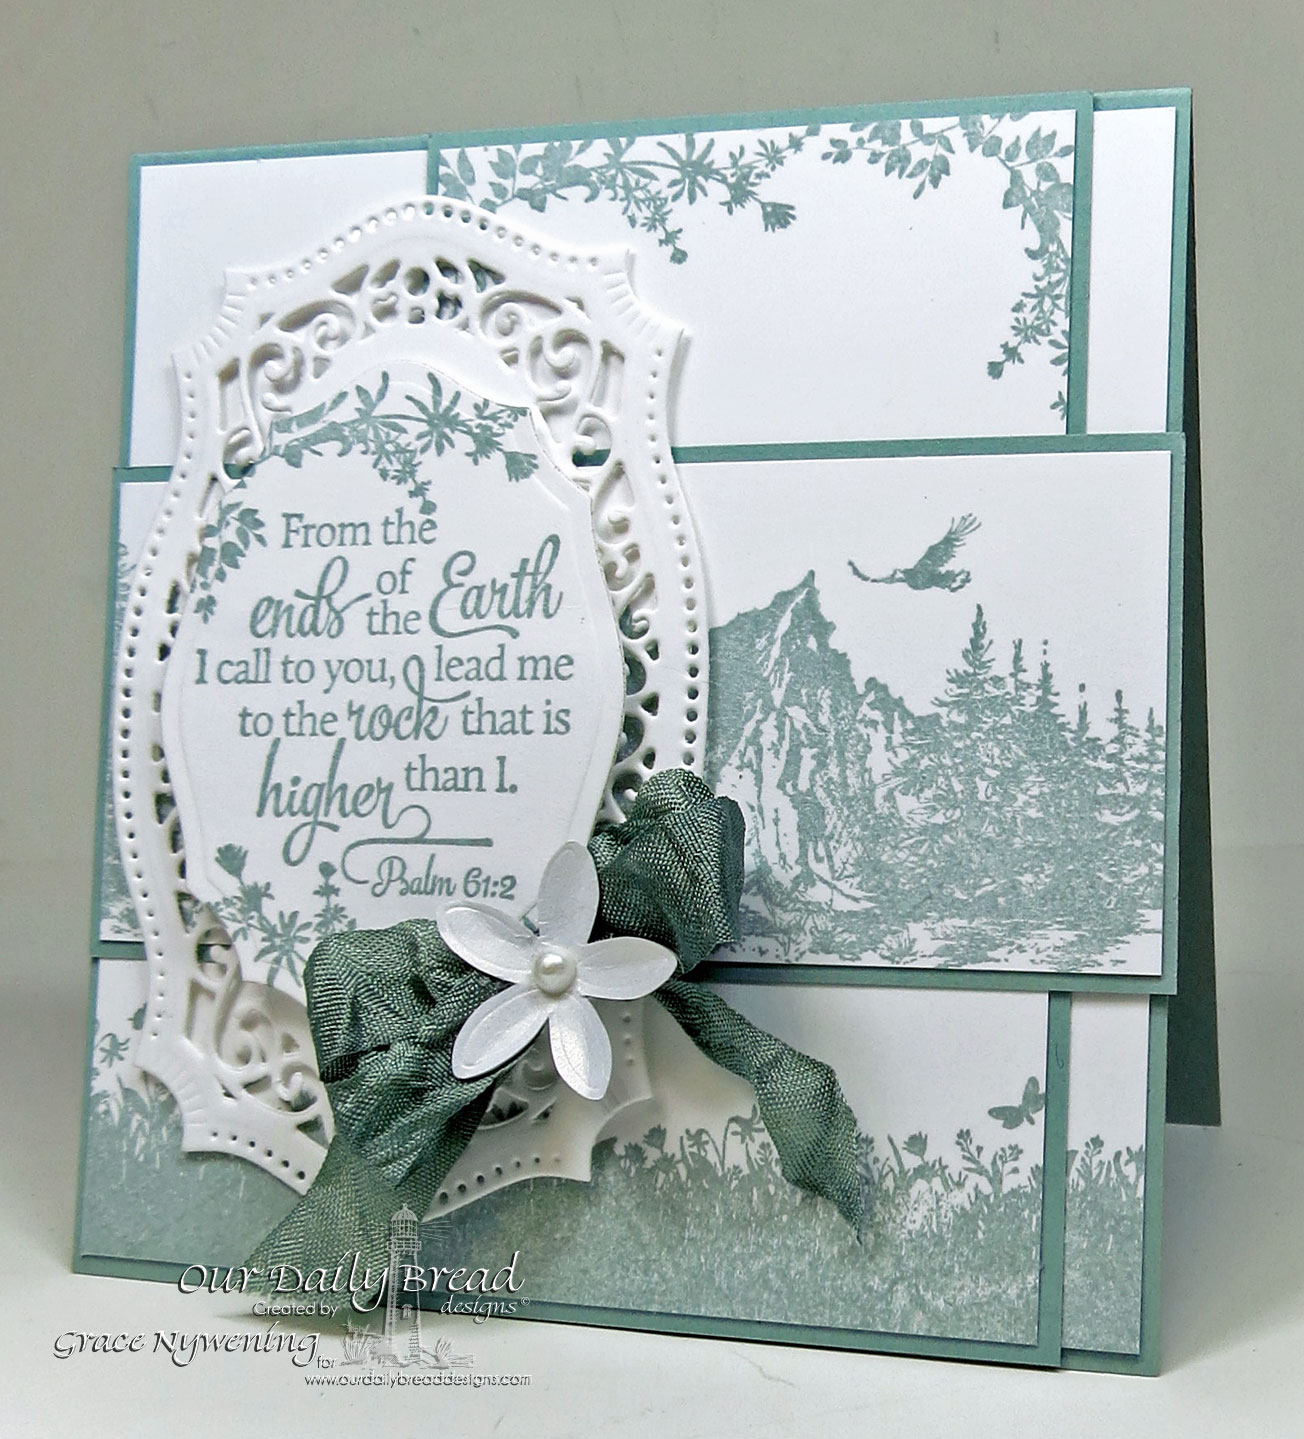 Stamps - Our Daily Bread Designs Scripture Collection 12, Keep Climbing, Bird Borders and Corners, ODBD Elegant Oval Die